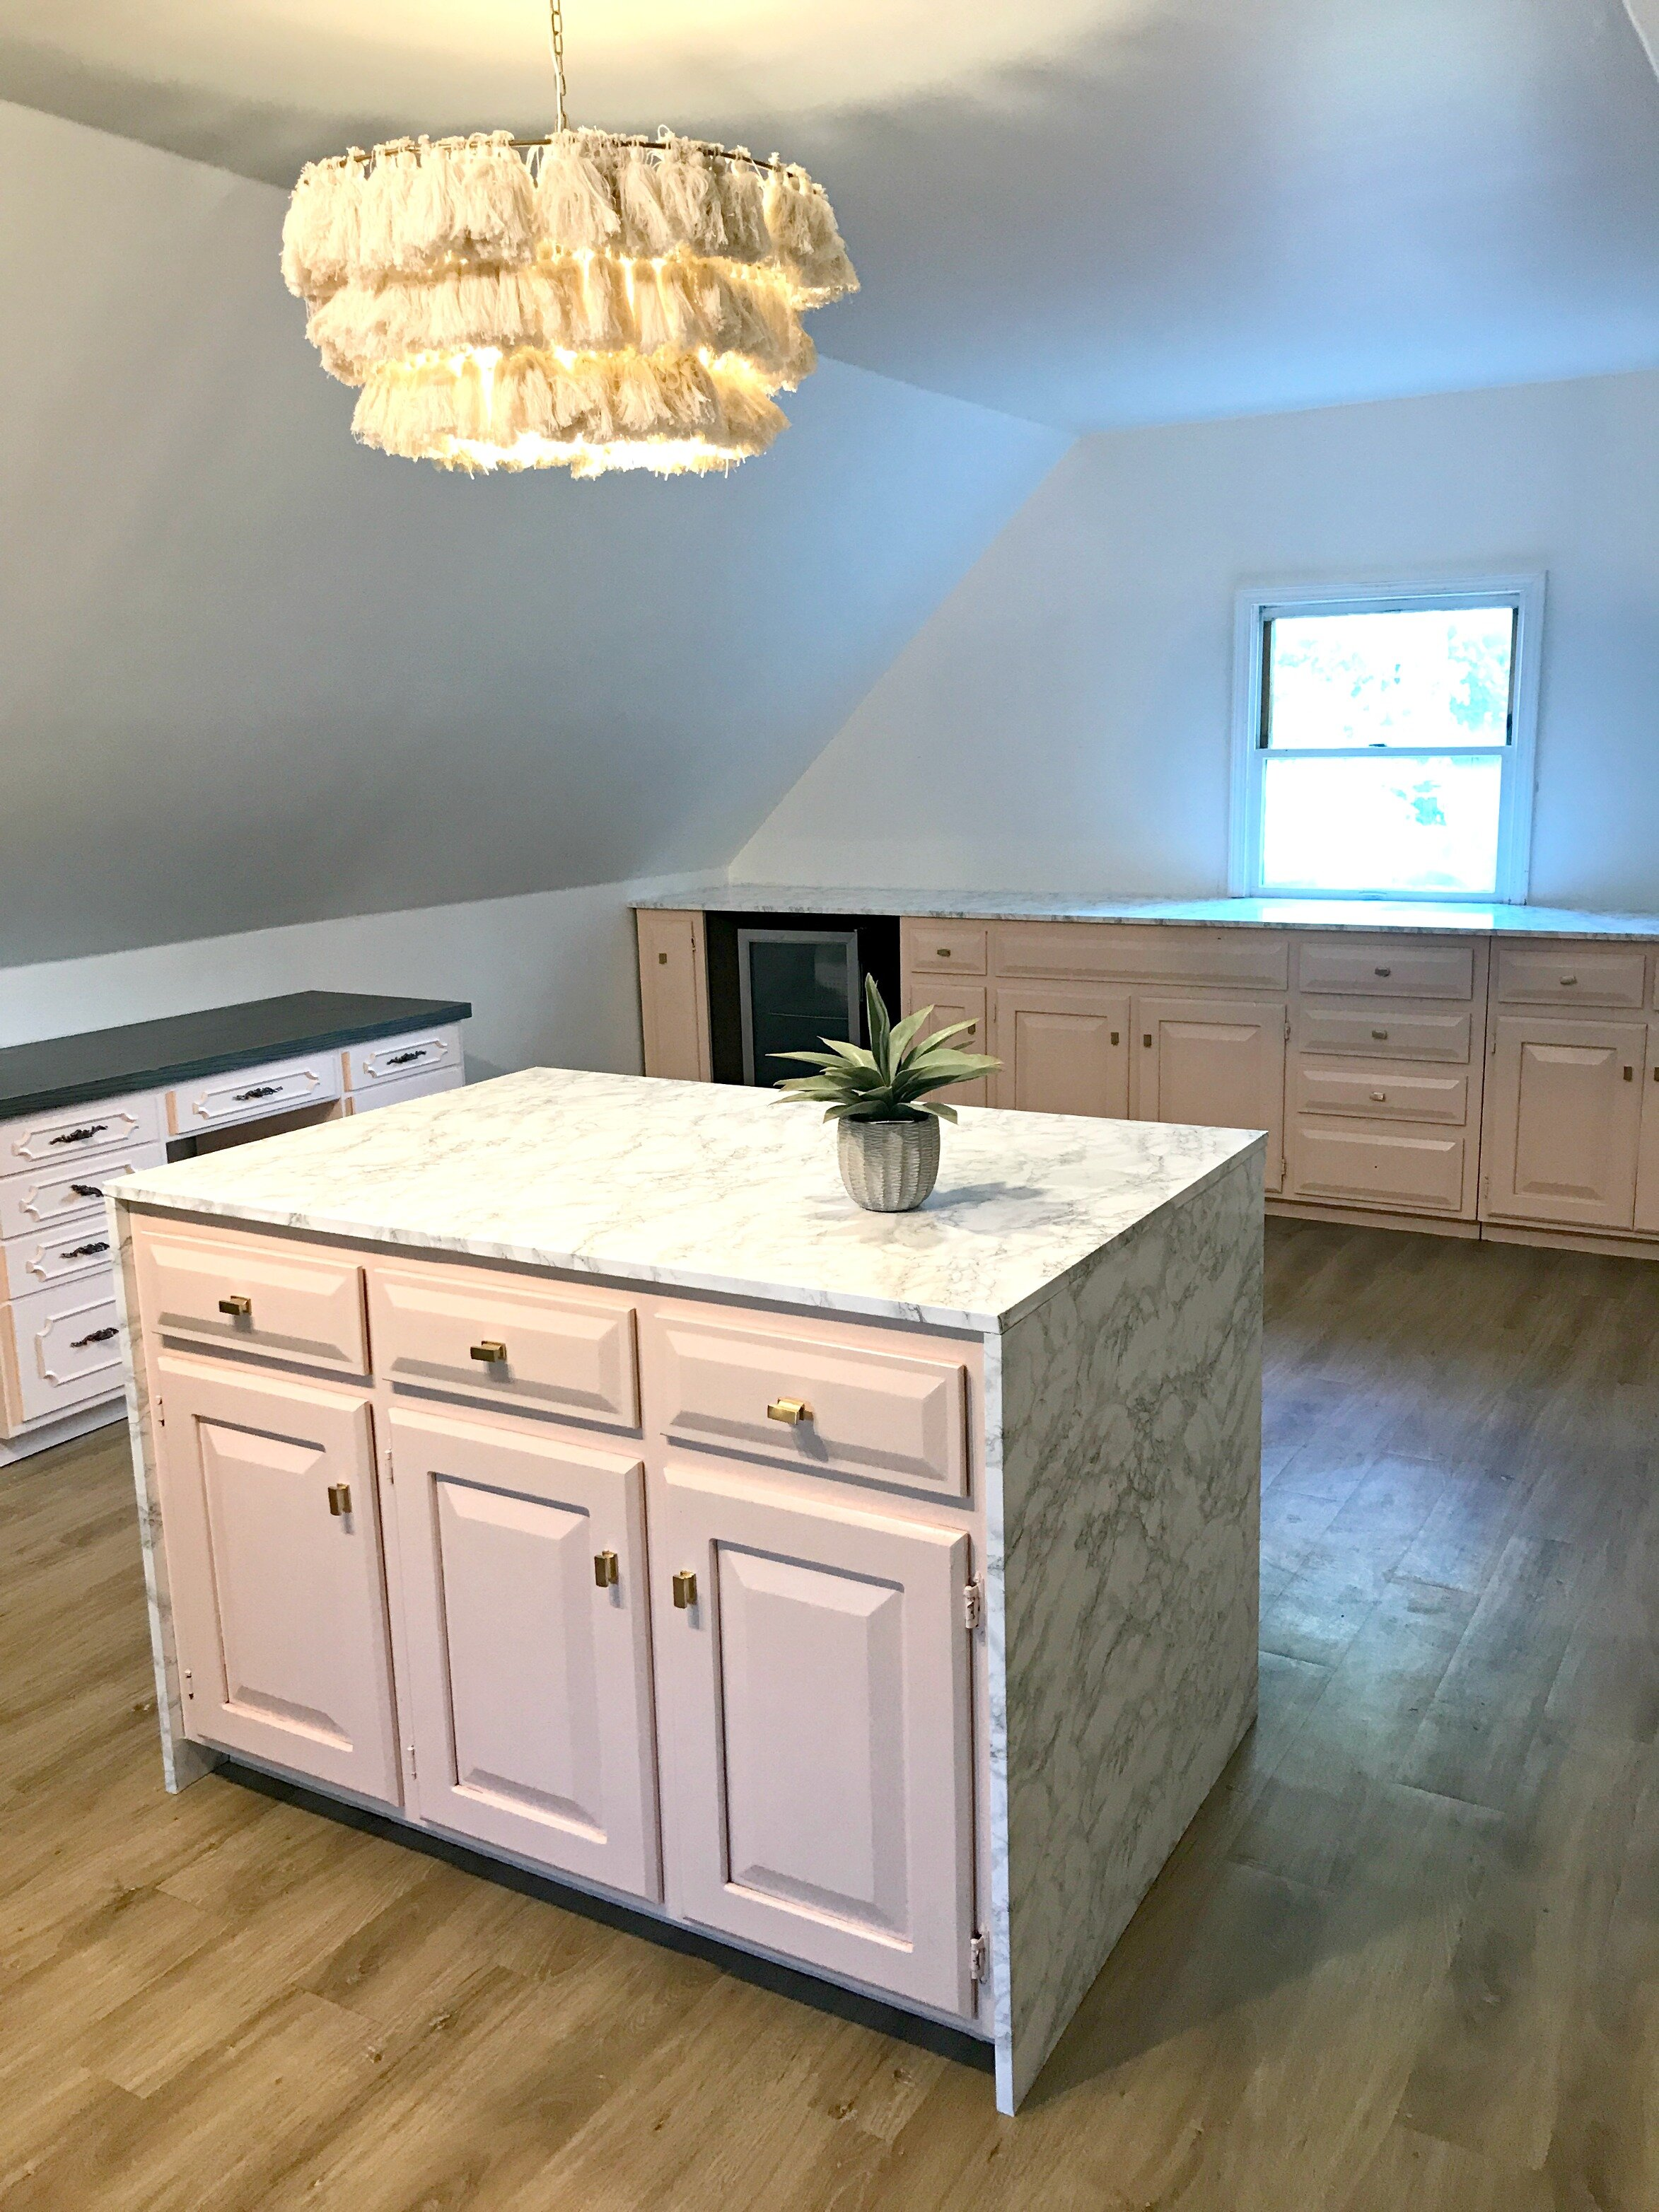 Diy Marble Look Countertops For Under 200 Gathered Living